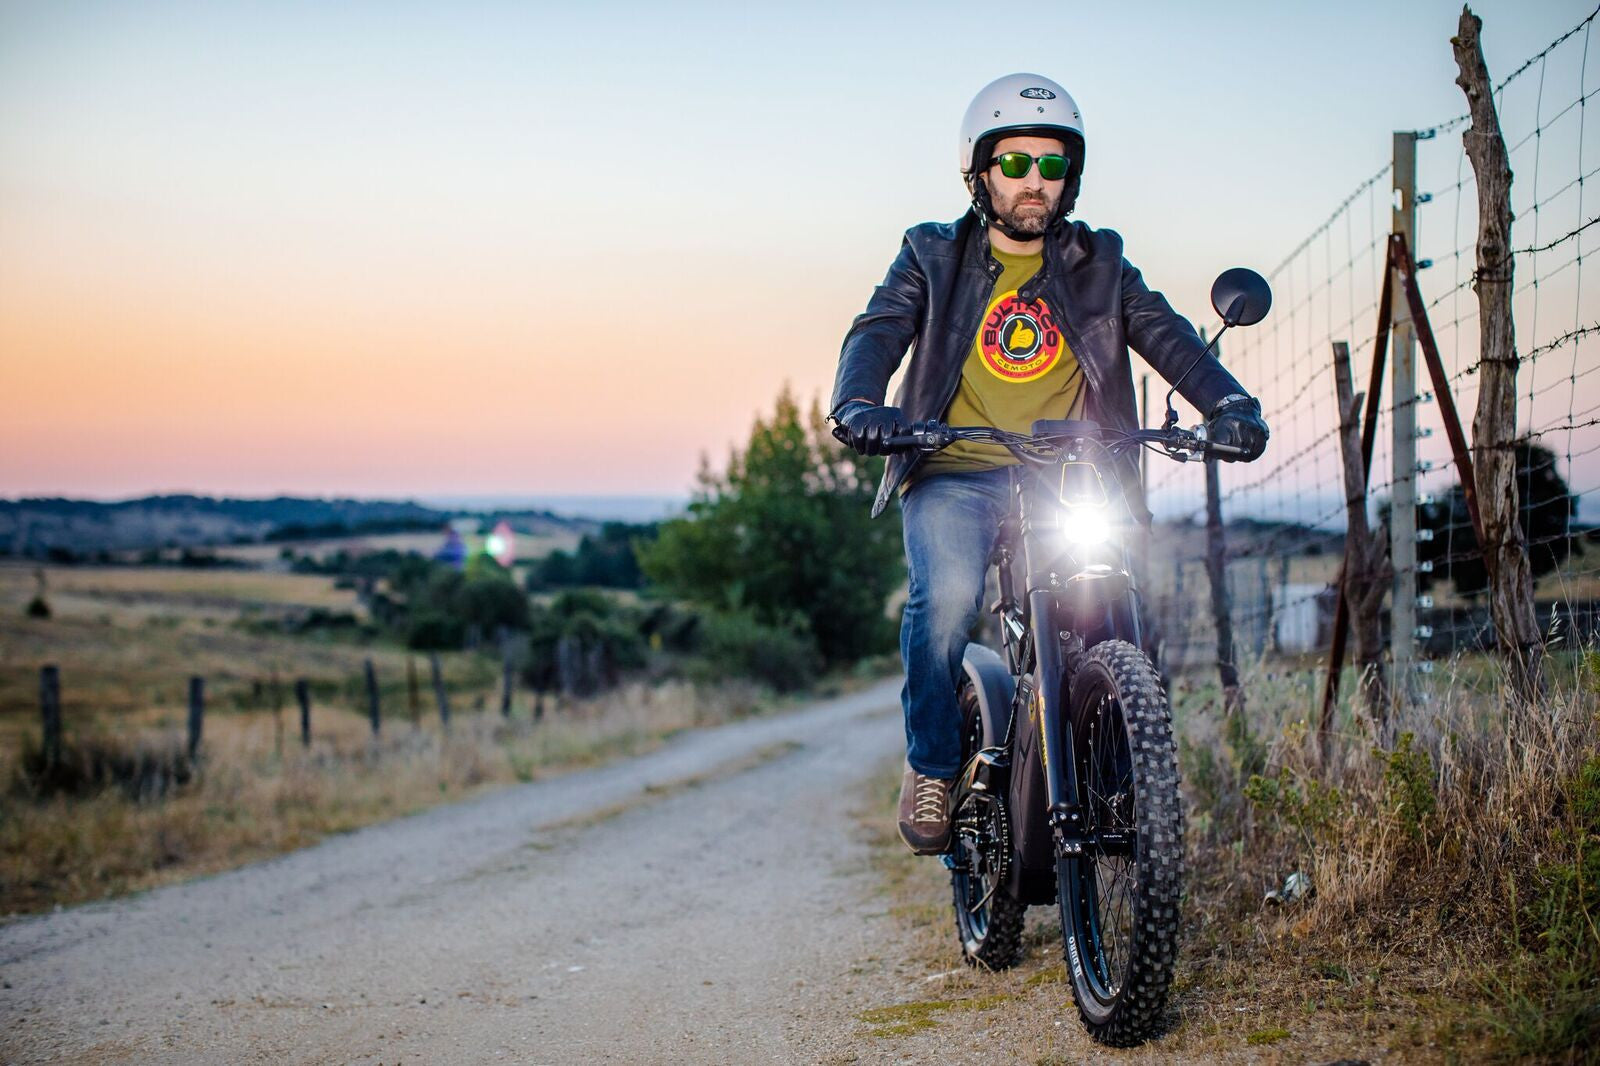 Bultaco Brinco C Restyle Night Time Shoot 10